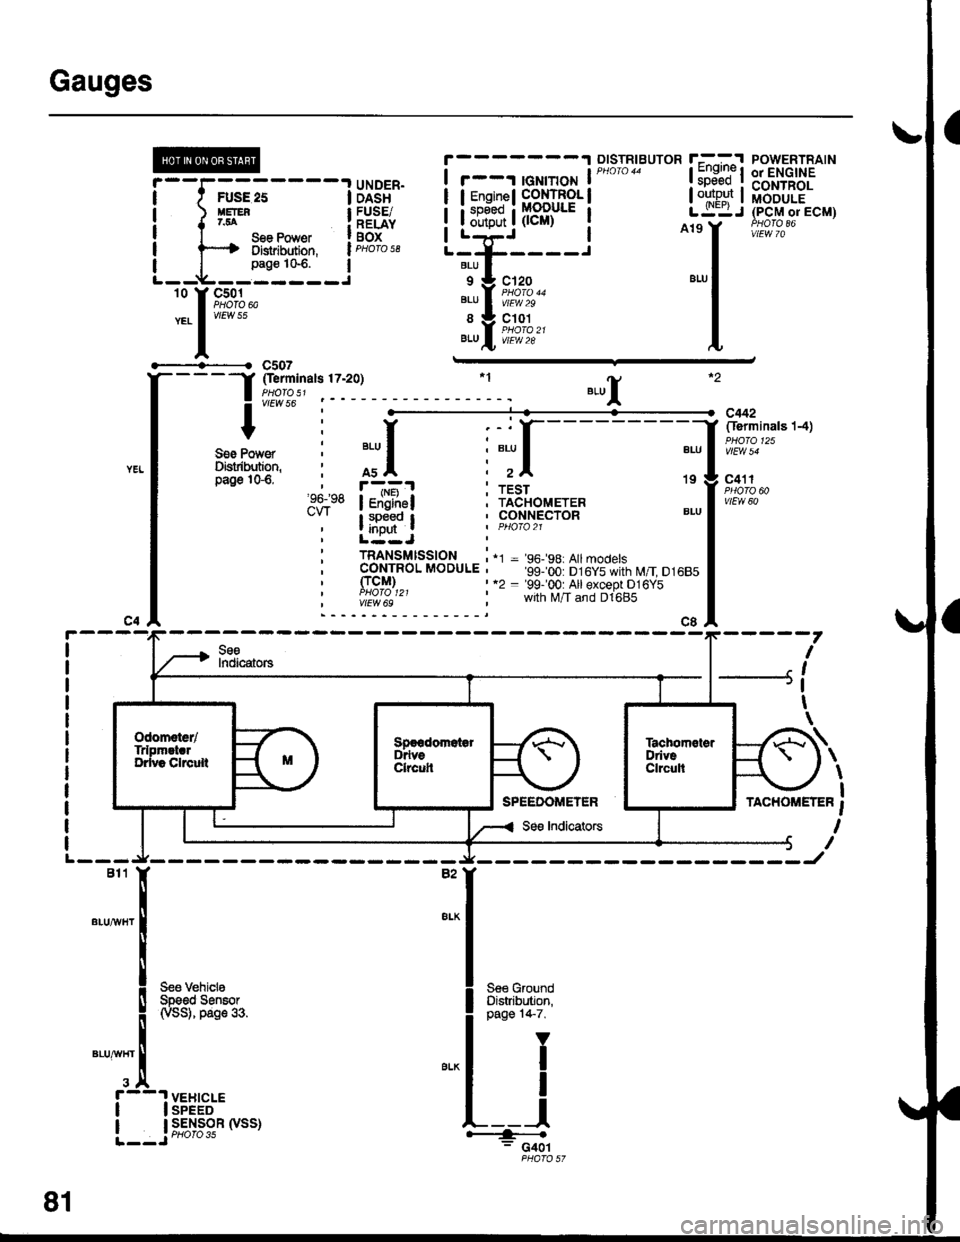 Mercedes Ml350 Fuse Box Diagram Wiring Library Ml320 4aslk Benz Install Serpentine Belt Also 2006